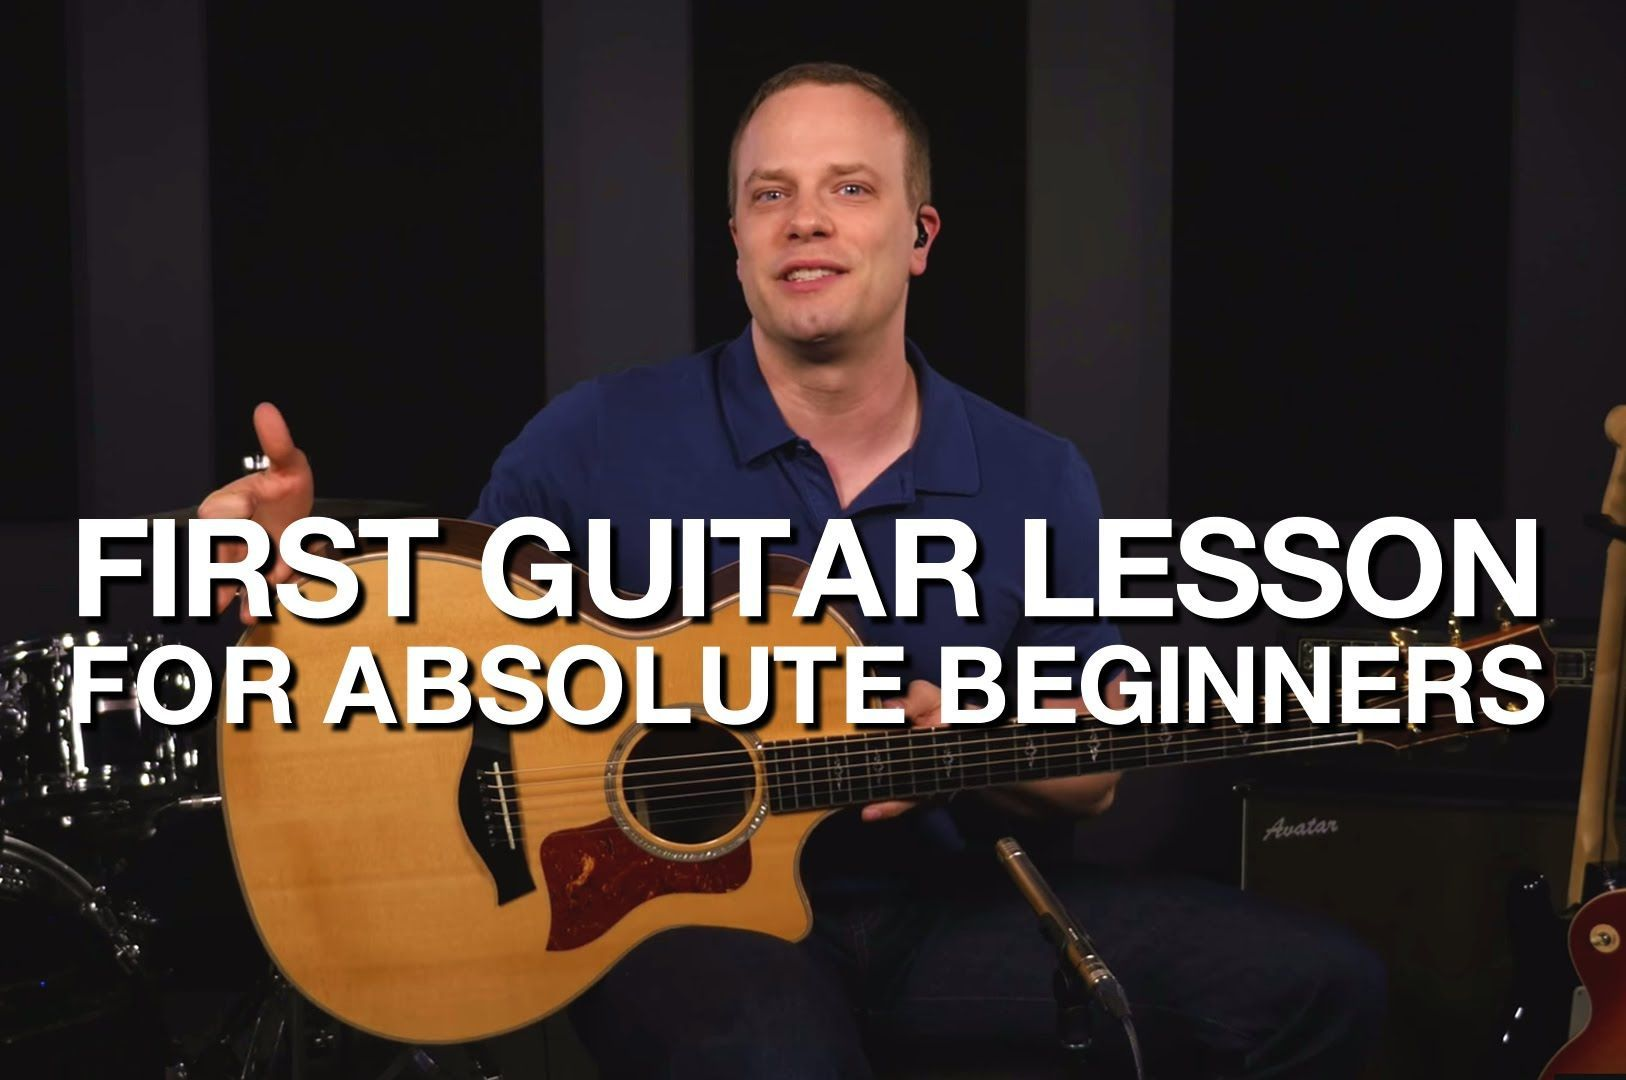 First Guitar Lesson For Beginners Guitar lessons, Basic